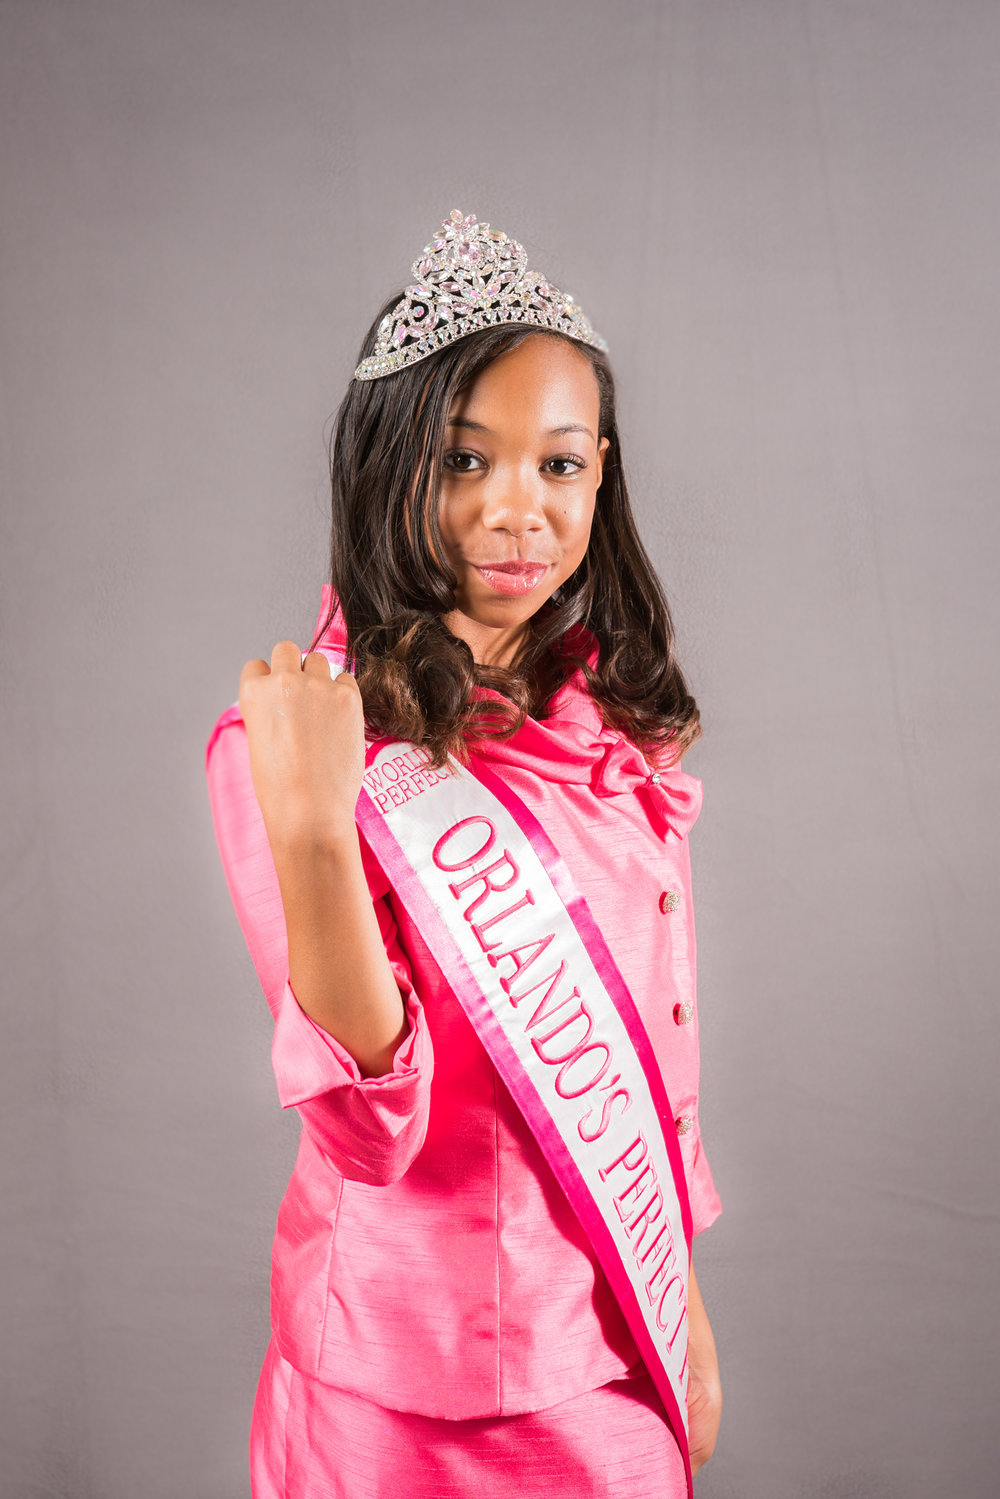 Orlandos-perfect-model, Worlds-perfect-pageant